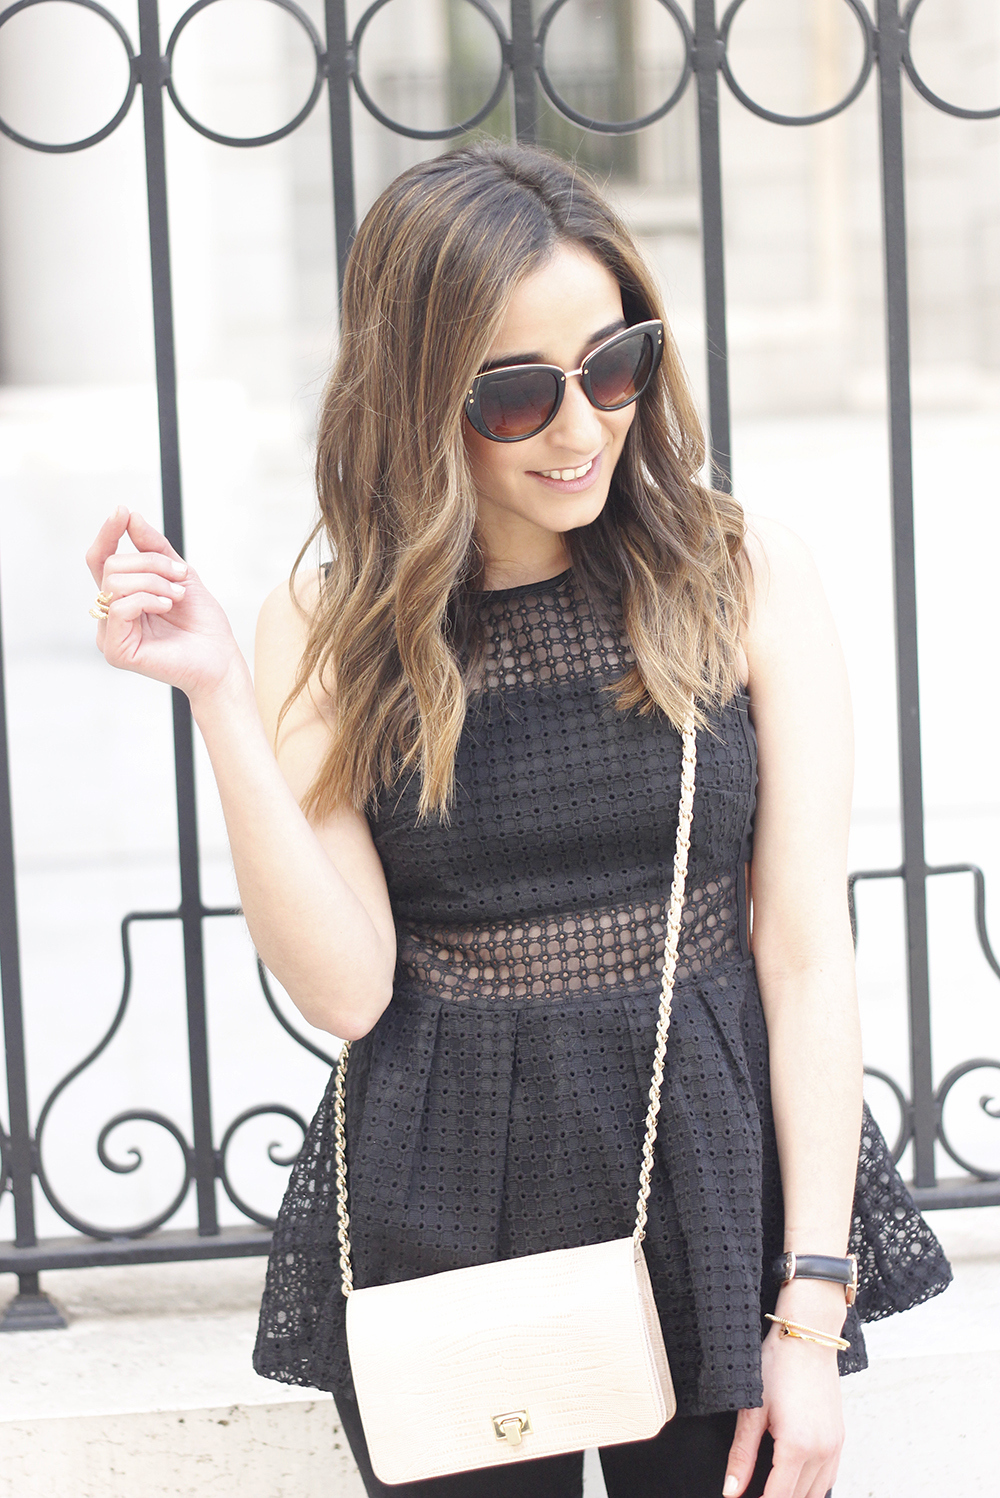 black peplum top sheinside black jeans sandals nude bag accessories sunnies spring outfit style03